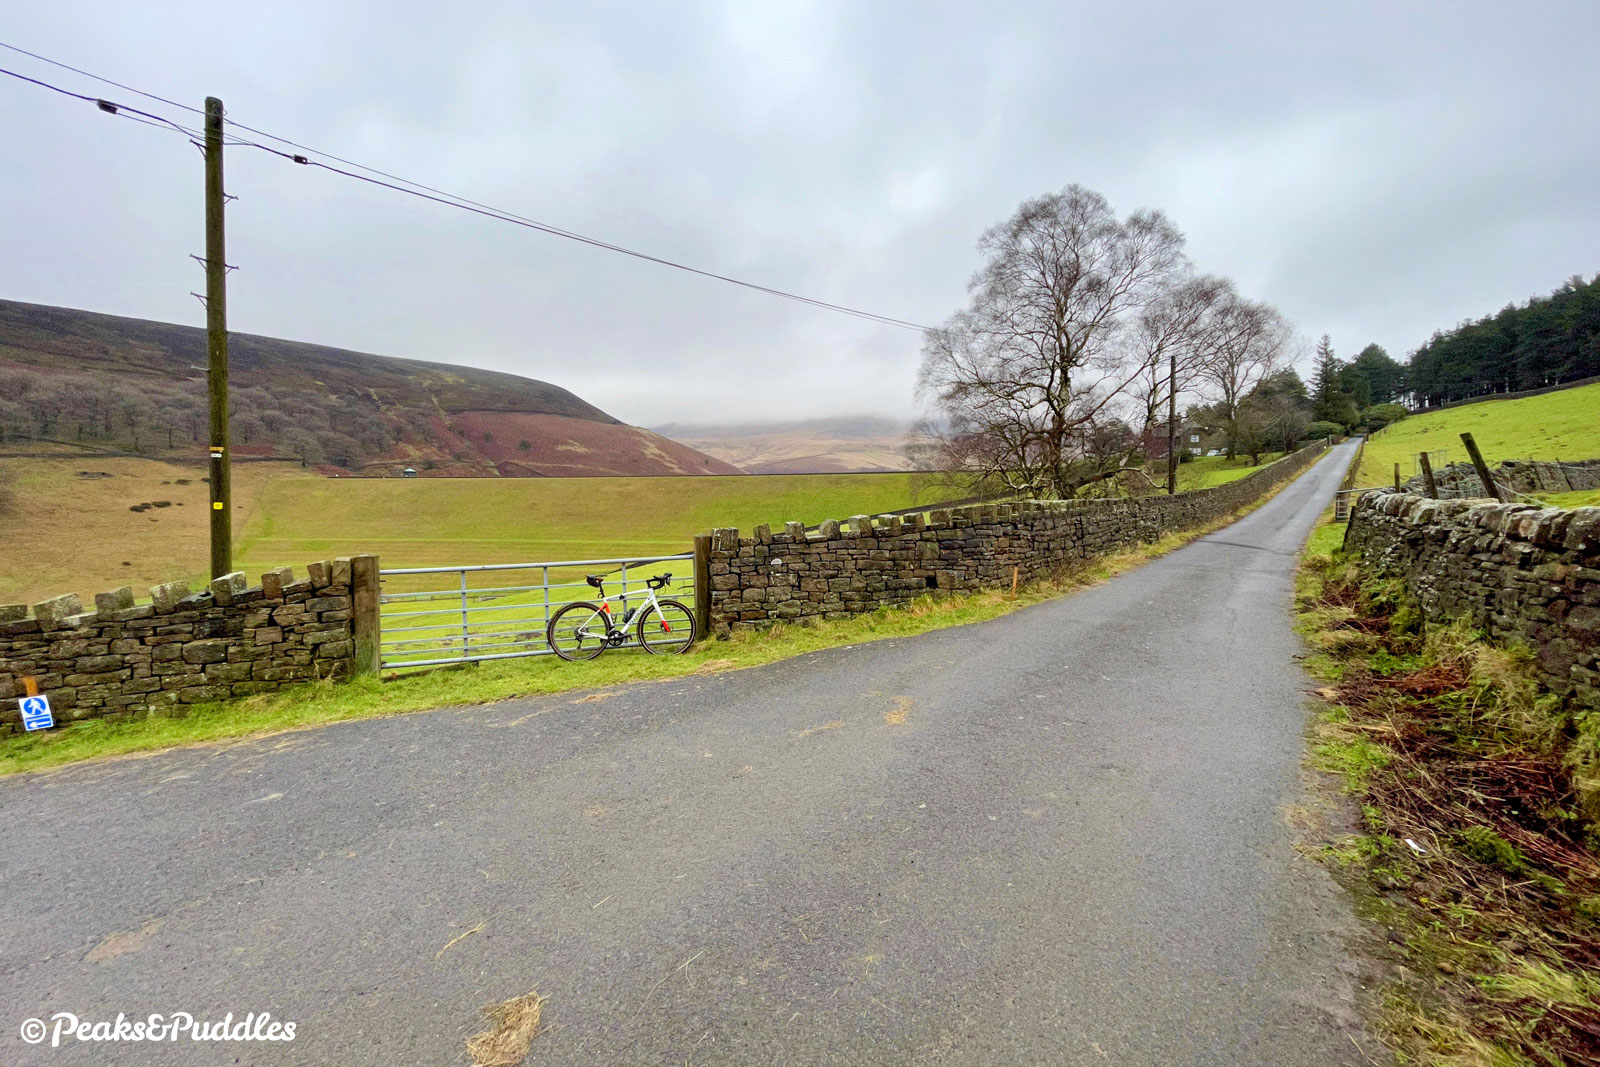 The lane ahead now truly is private, but at this crossroads of sorts bridleways join from either side for more challenging off-road adventures.